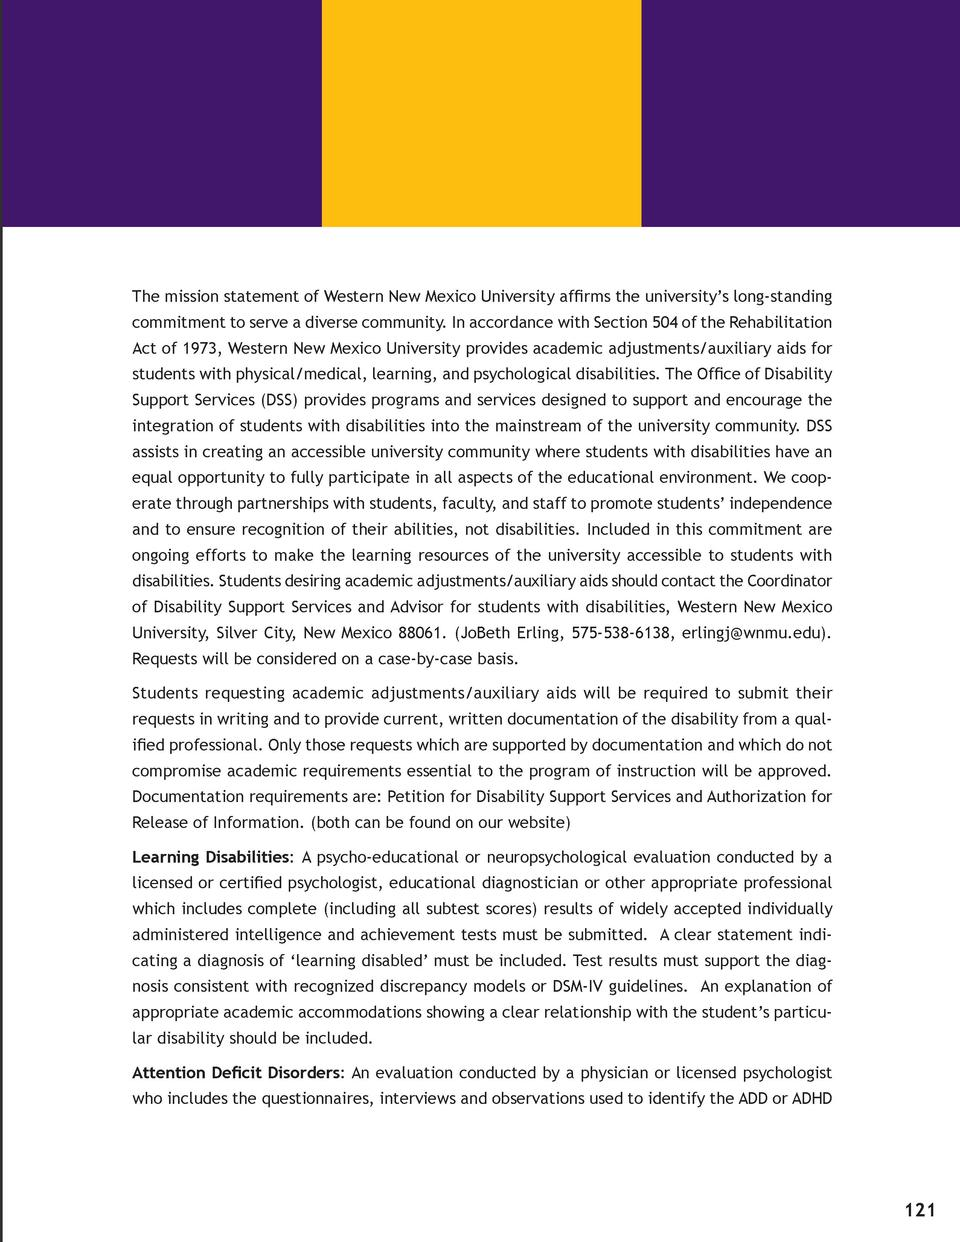 The mission statement of Western New Mexico University affirms the university   s long-standing commitment to serve a dive...